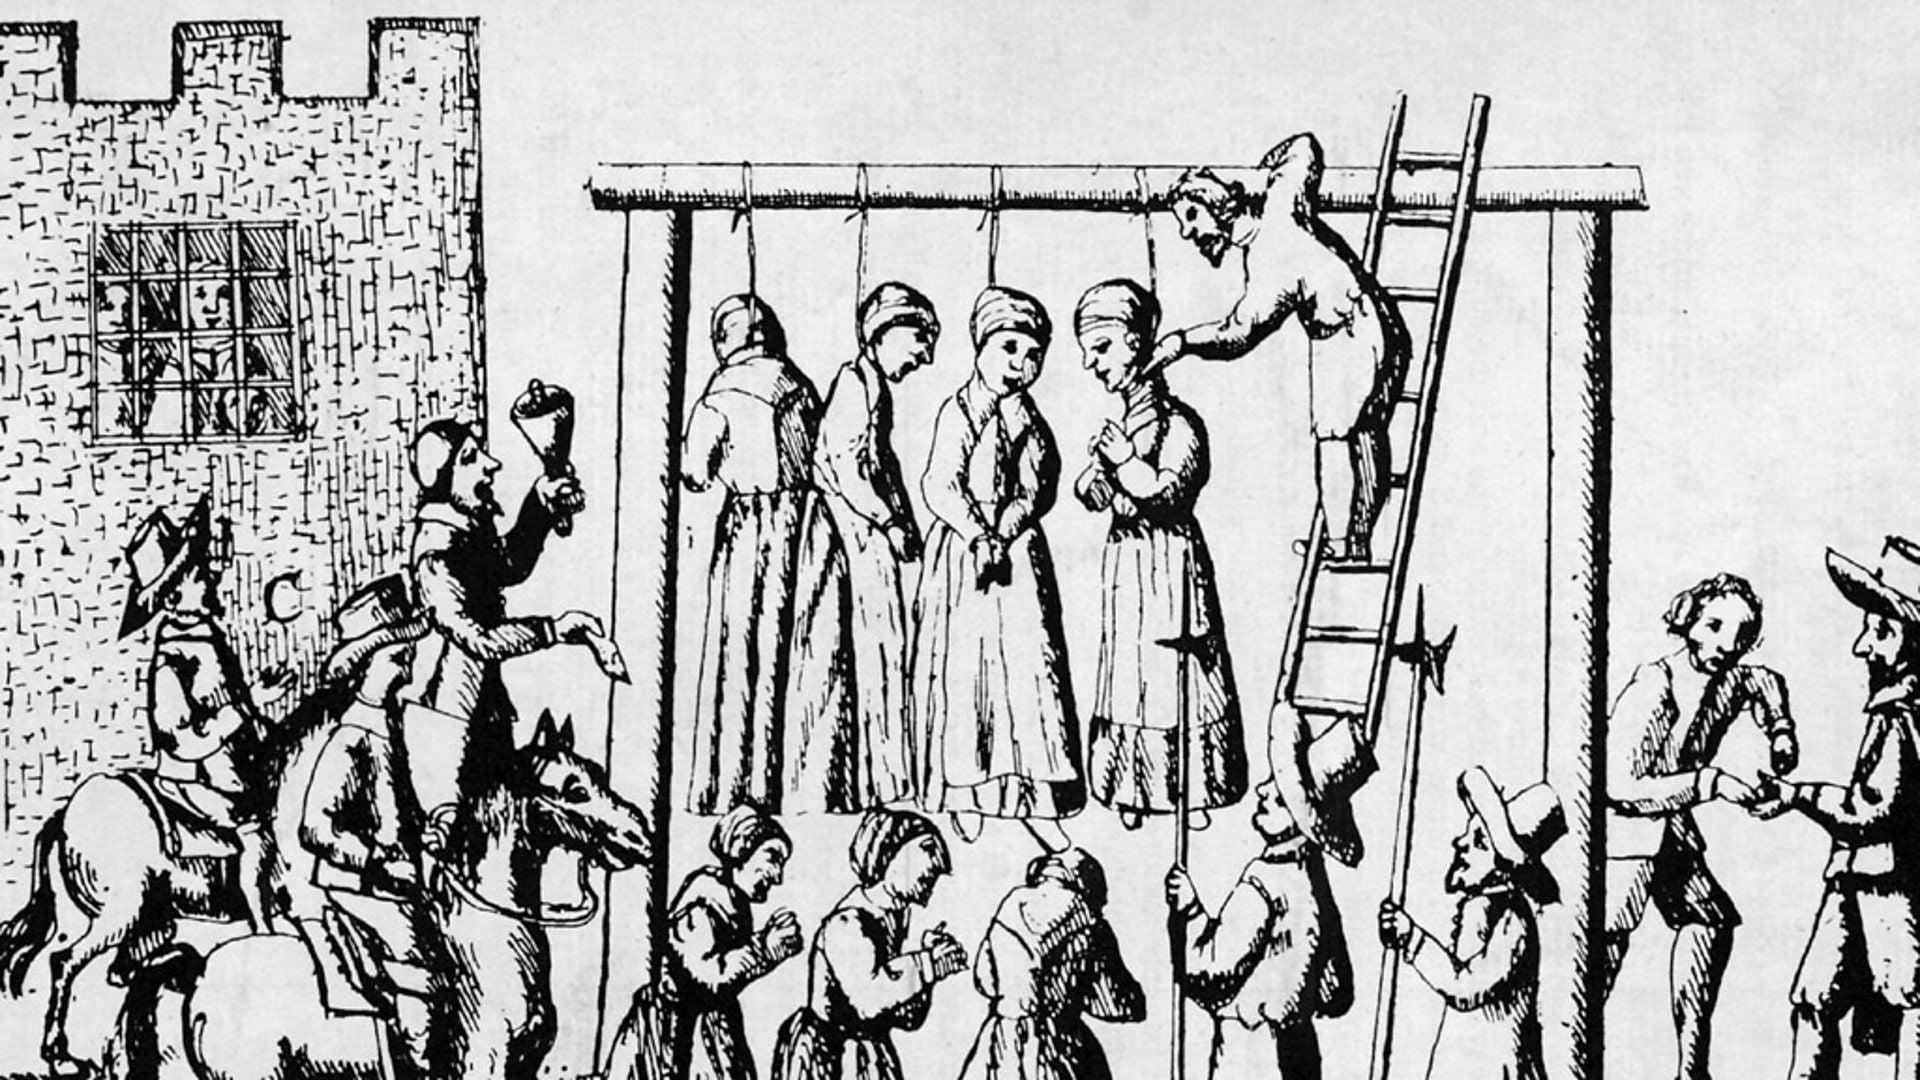 witchcraft and witch hunting stories